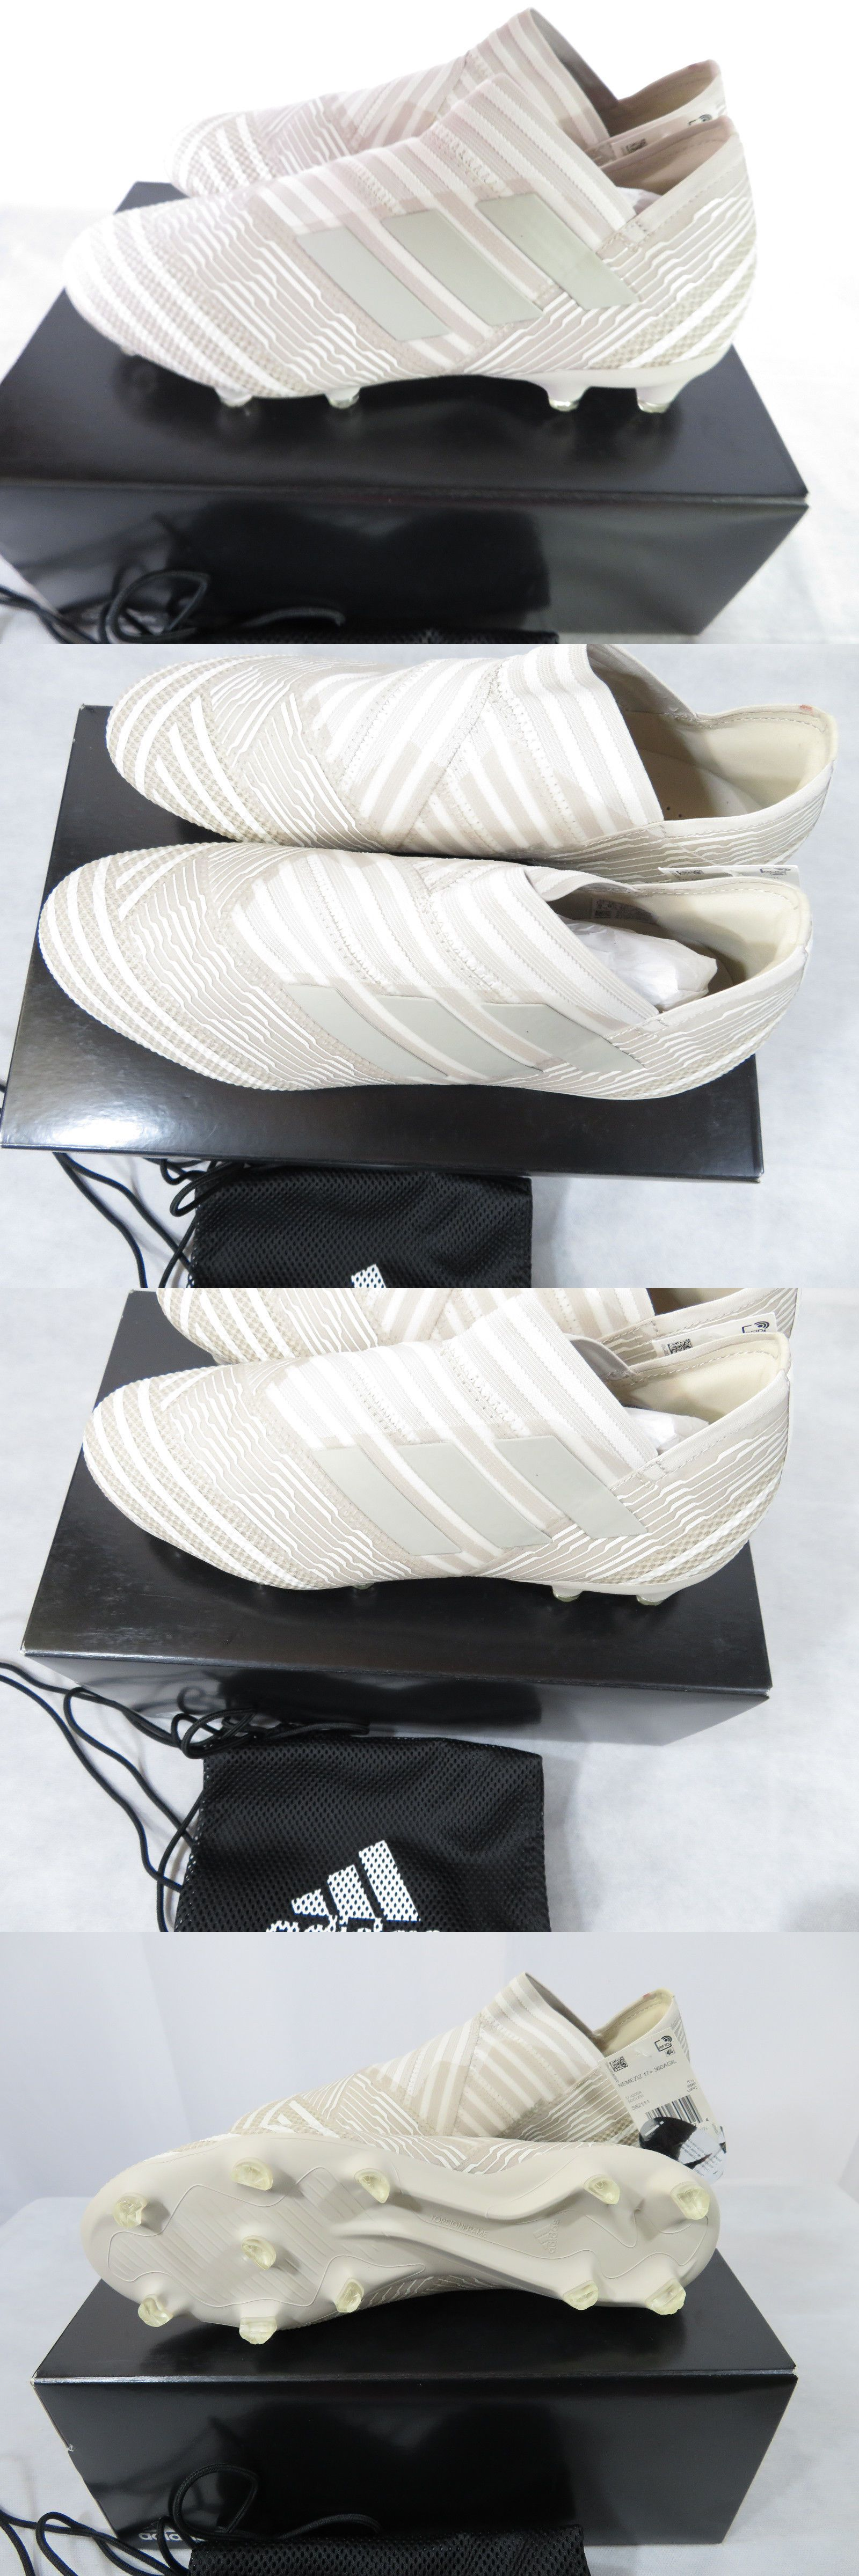 5c1885044632 Clothing Shoes and Accessories 159178  Adidas Nemeziz 17+ 360 Agility Fg  S82111 Soccer Cleat